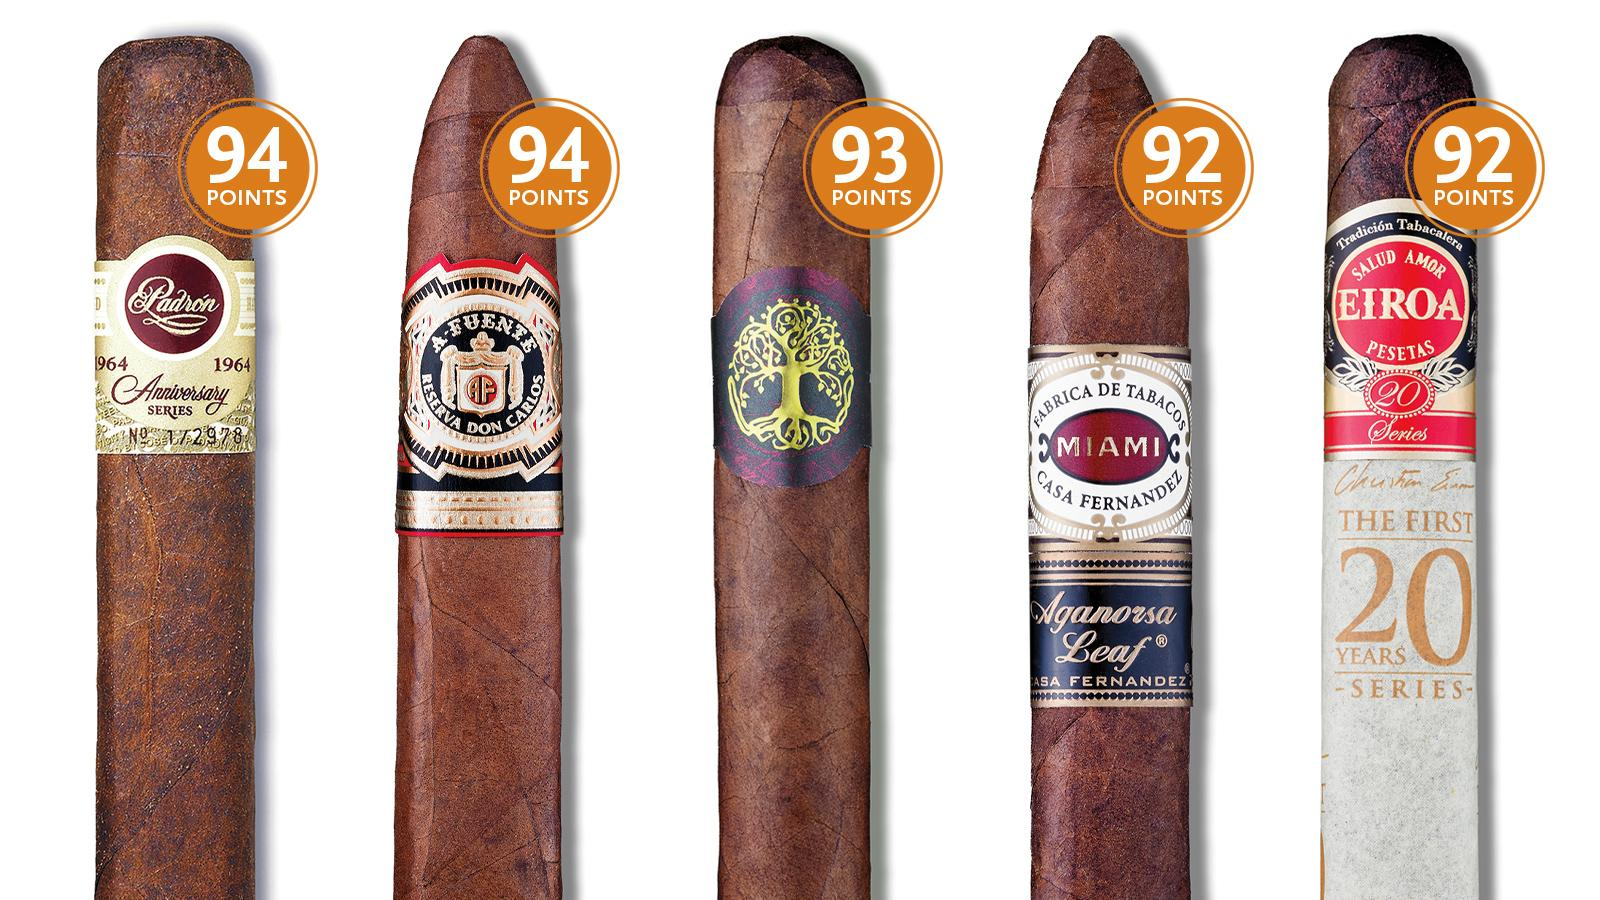 16 Highly-Rated Cigars To Add To Your Humidor